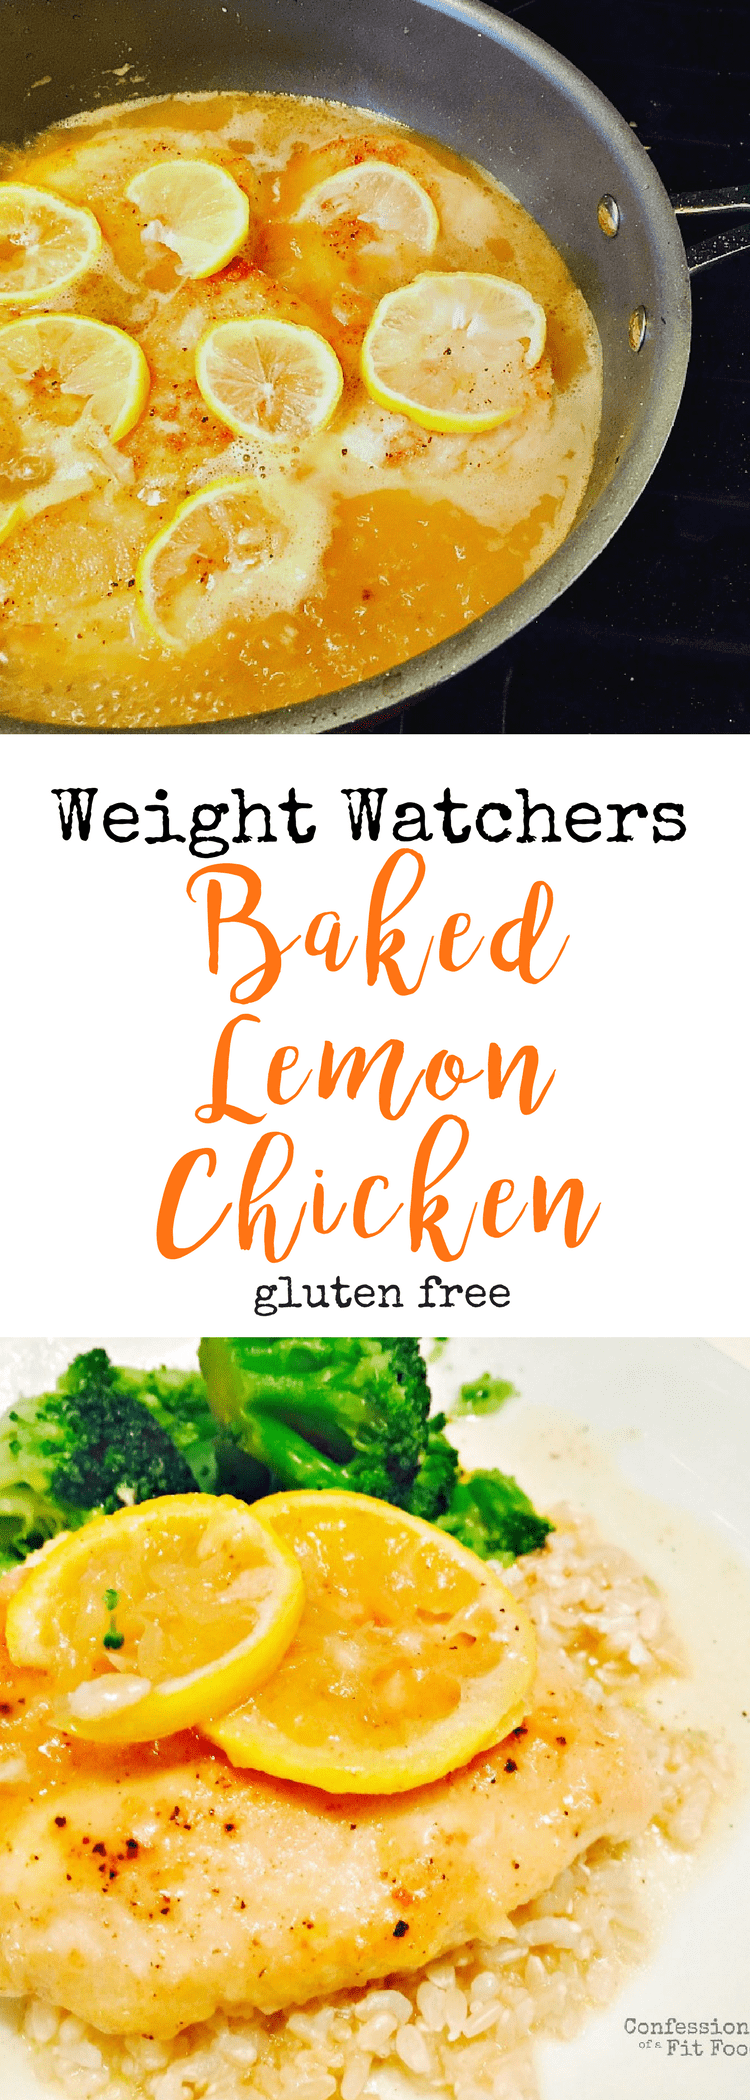 Weight Watchers Baked Lemon Chicken | Confessions of a Fit Foodie